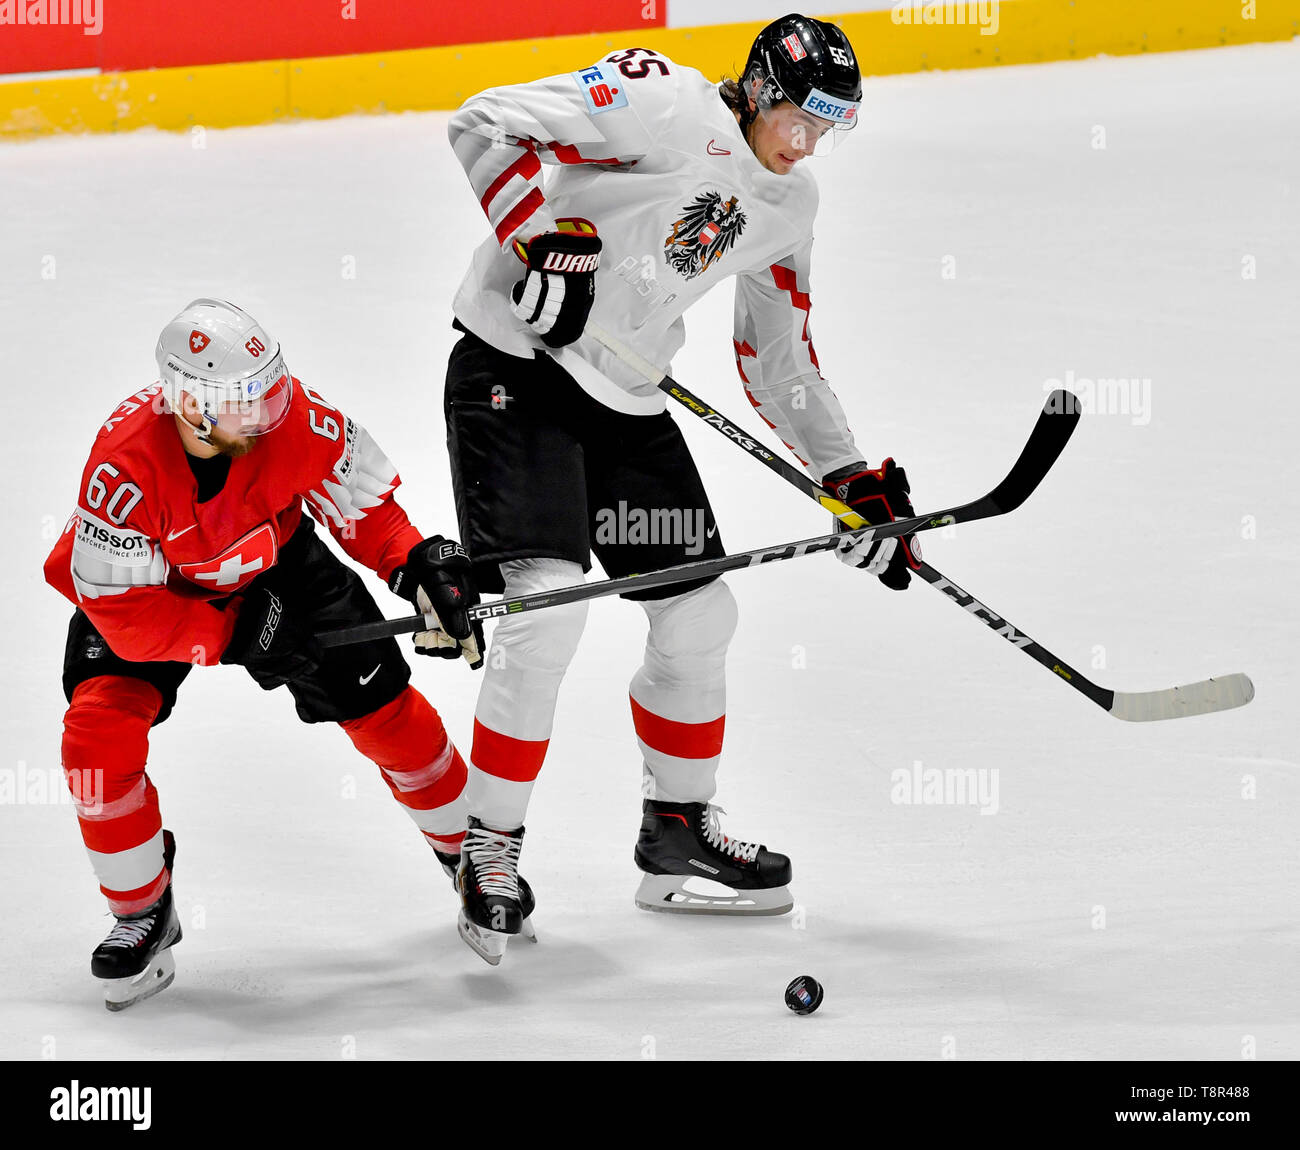 Bratislava, Slovakia. 14th May, 2019. L-R TRISTAN SCHERWEY (SUI) and RAPHAEL WOLF (AUT) in action during the match Switzerland against Austria at the 2019 IIHF World Championship in Bratislava, Slovakia, on May 14, 2019. Credit: Vit Simanek/CTK Photo/Alamy Live News Stock Photo